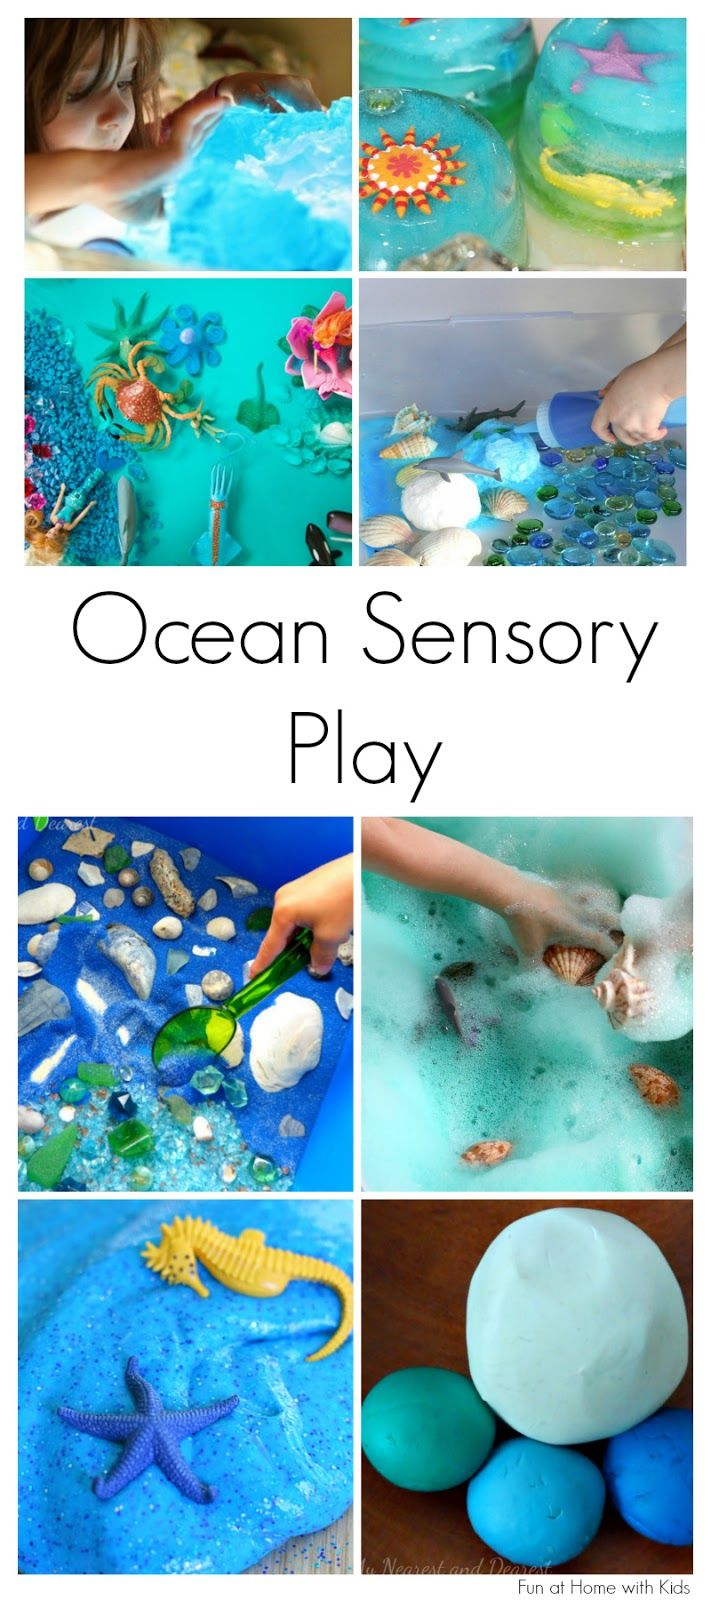 15 of the best ideas for Ocean-themed Sensory Play.  Includes ideas for babies, toddlers, preschoolers, and older children.  From Fun at Hom...: Ocean Sensory, Ocean Theme, At Home, For Kids, Play Ideas, Plays Ideas, 15 Ideas, Baby, Sensory Plays